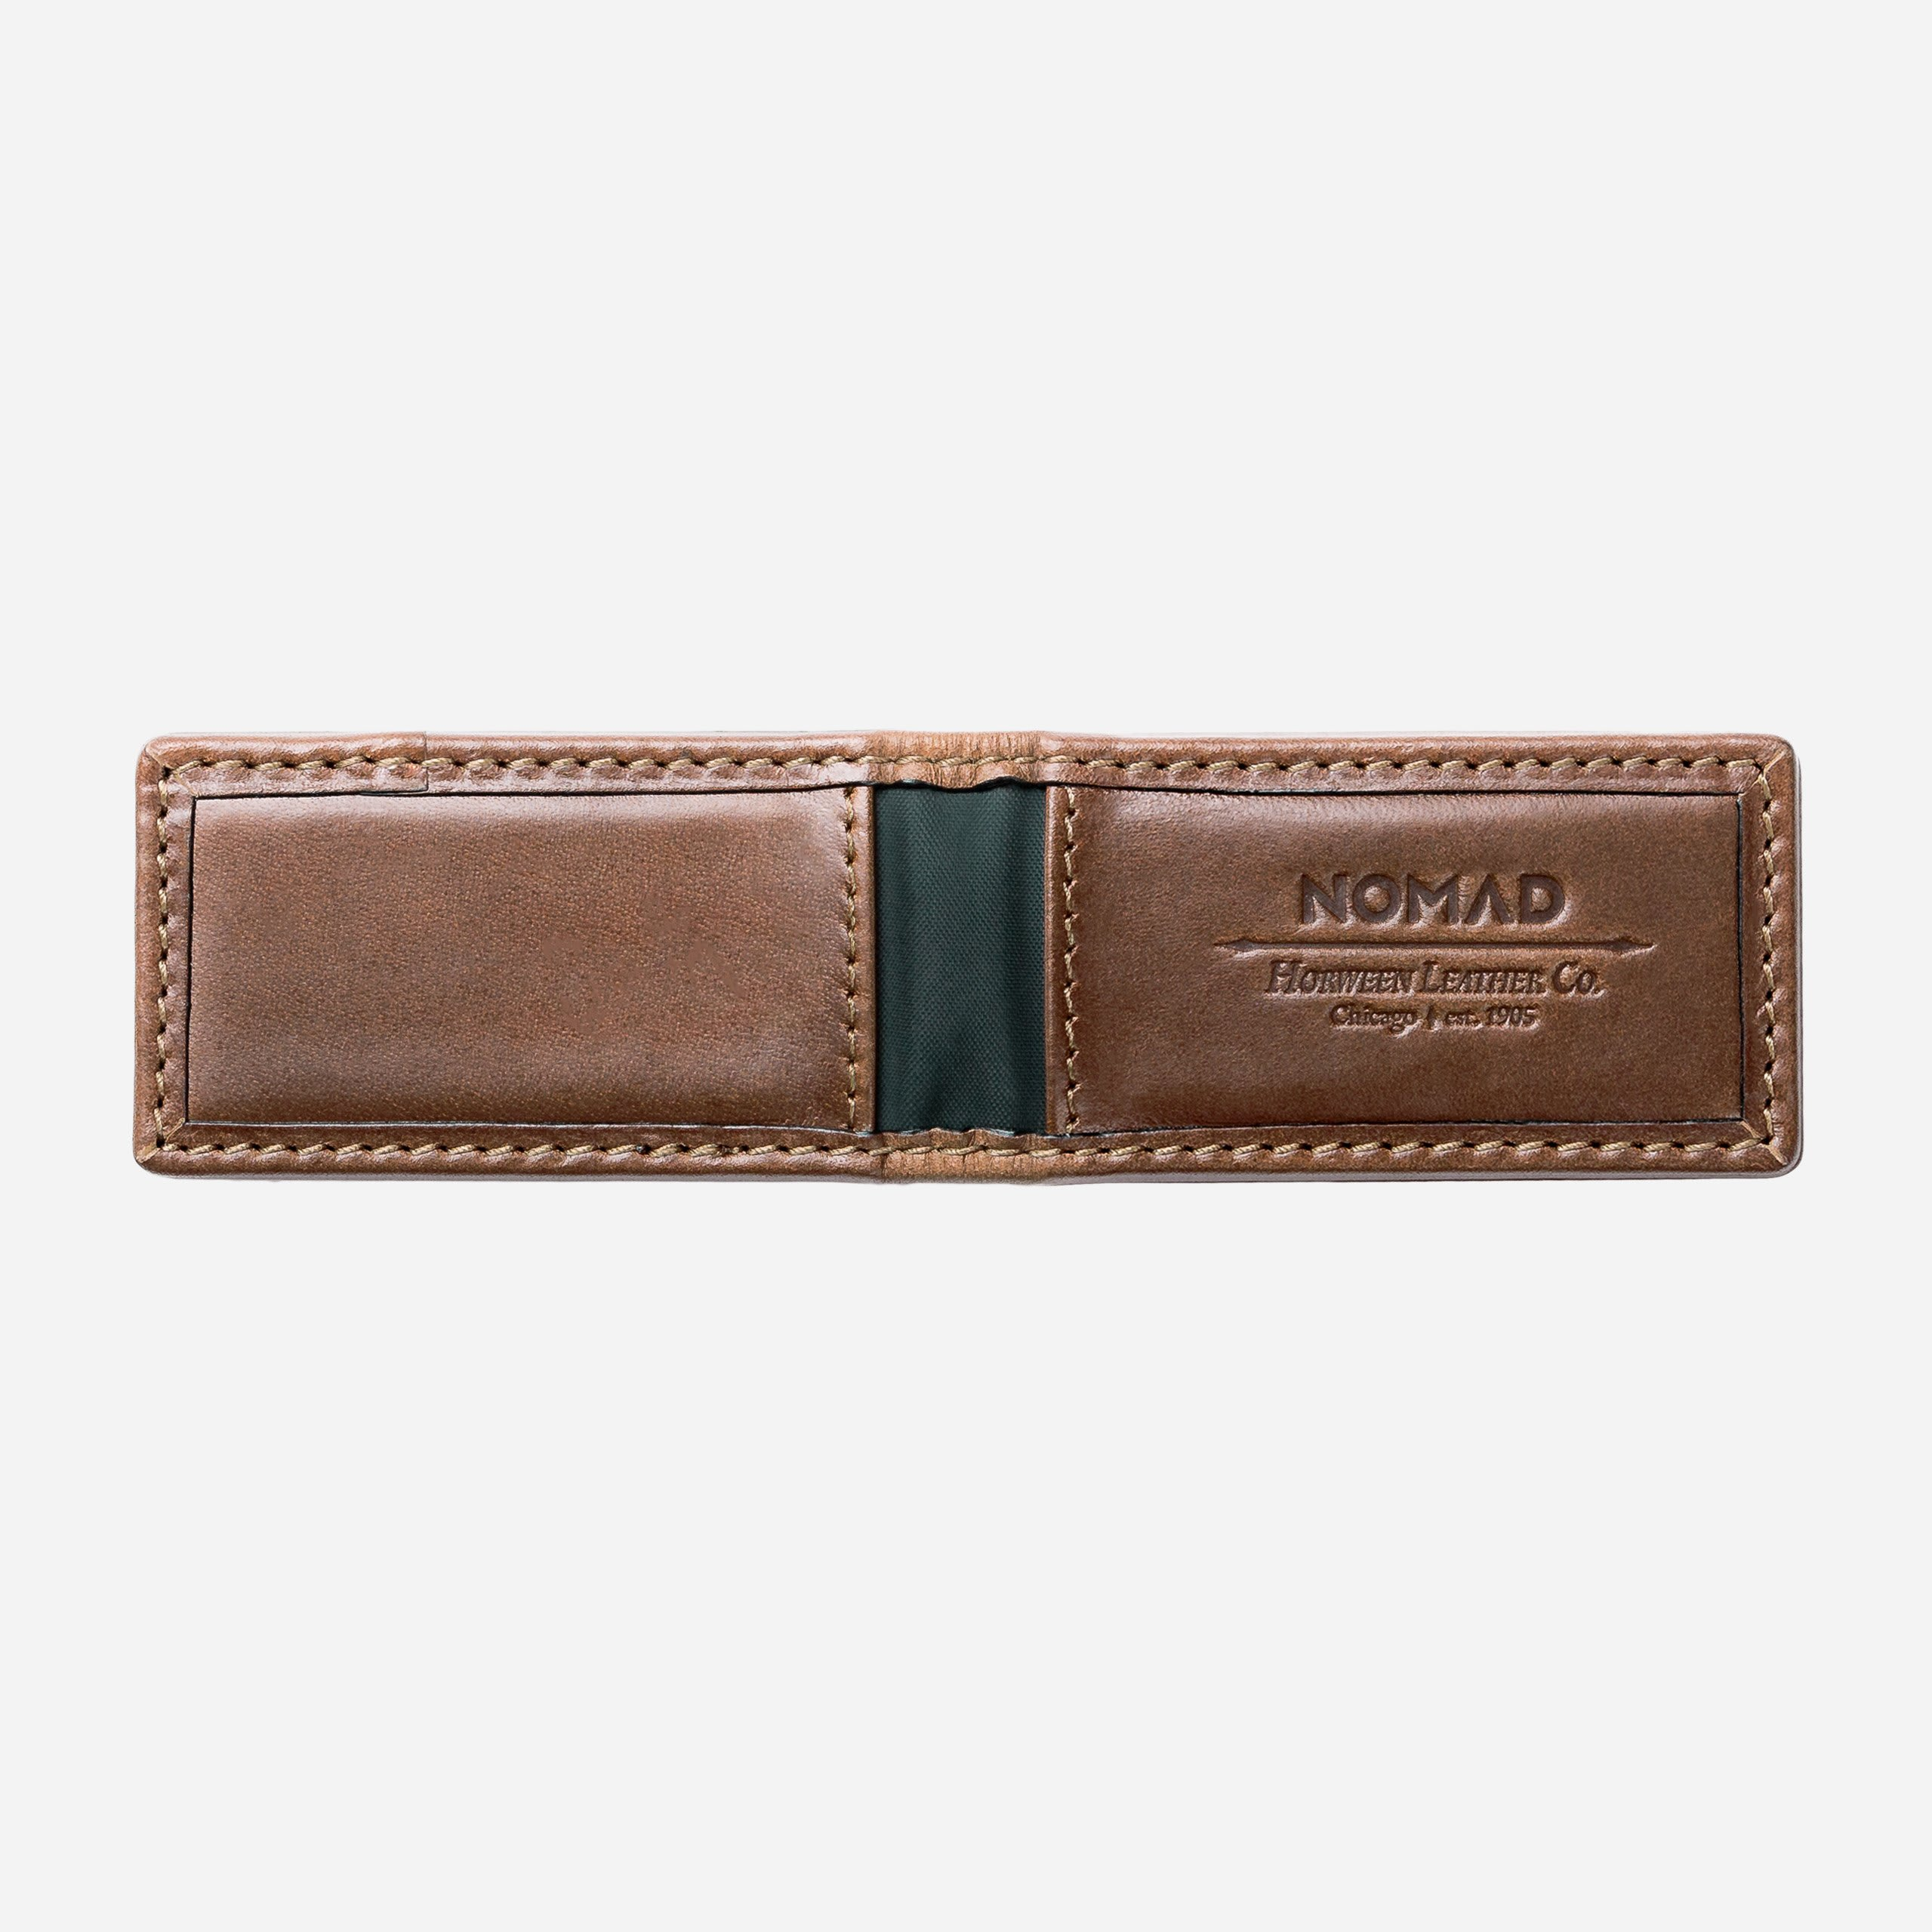 Leather Money Clip Opened